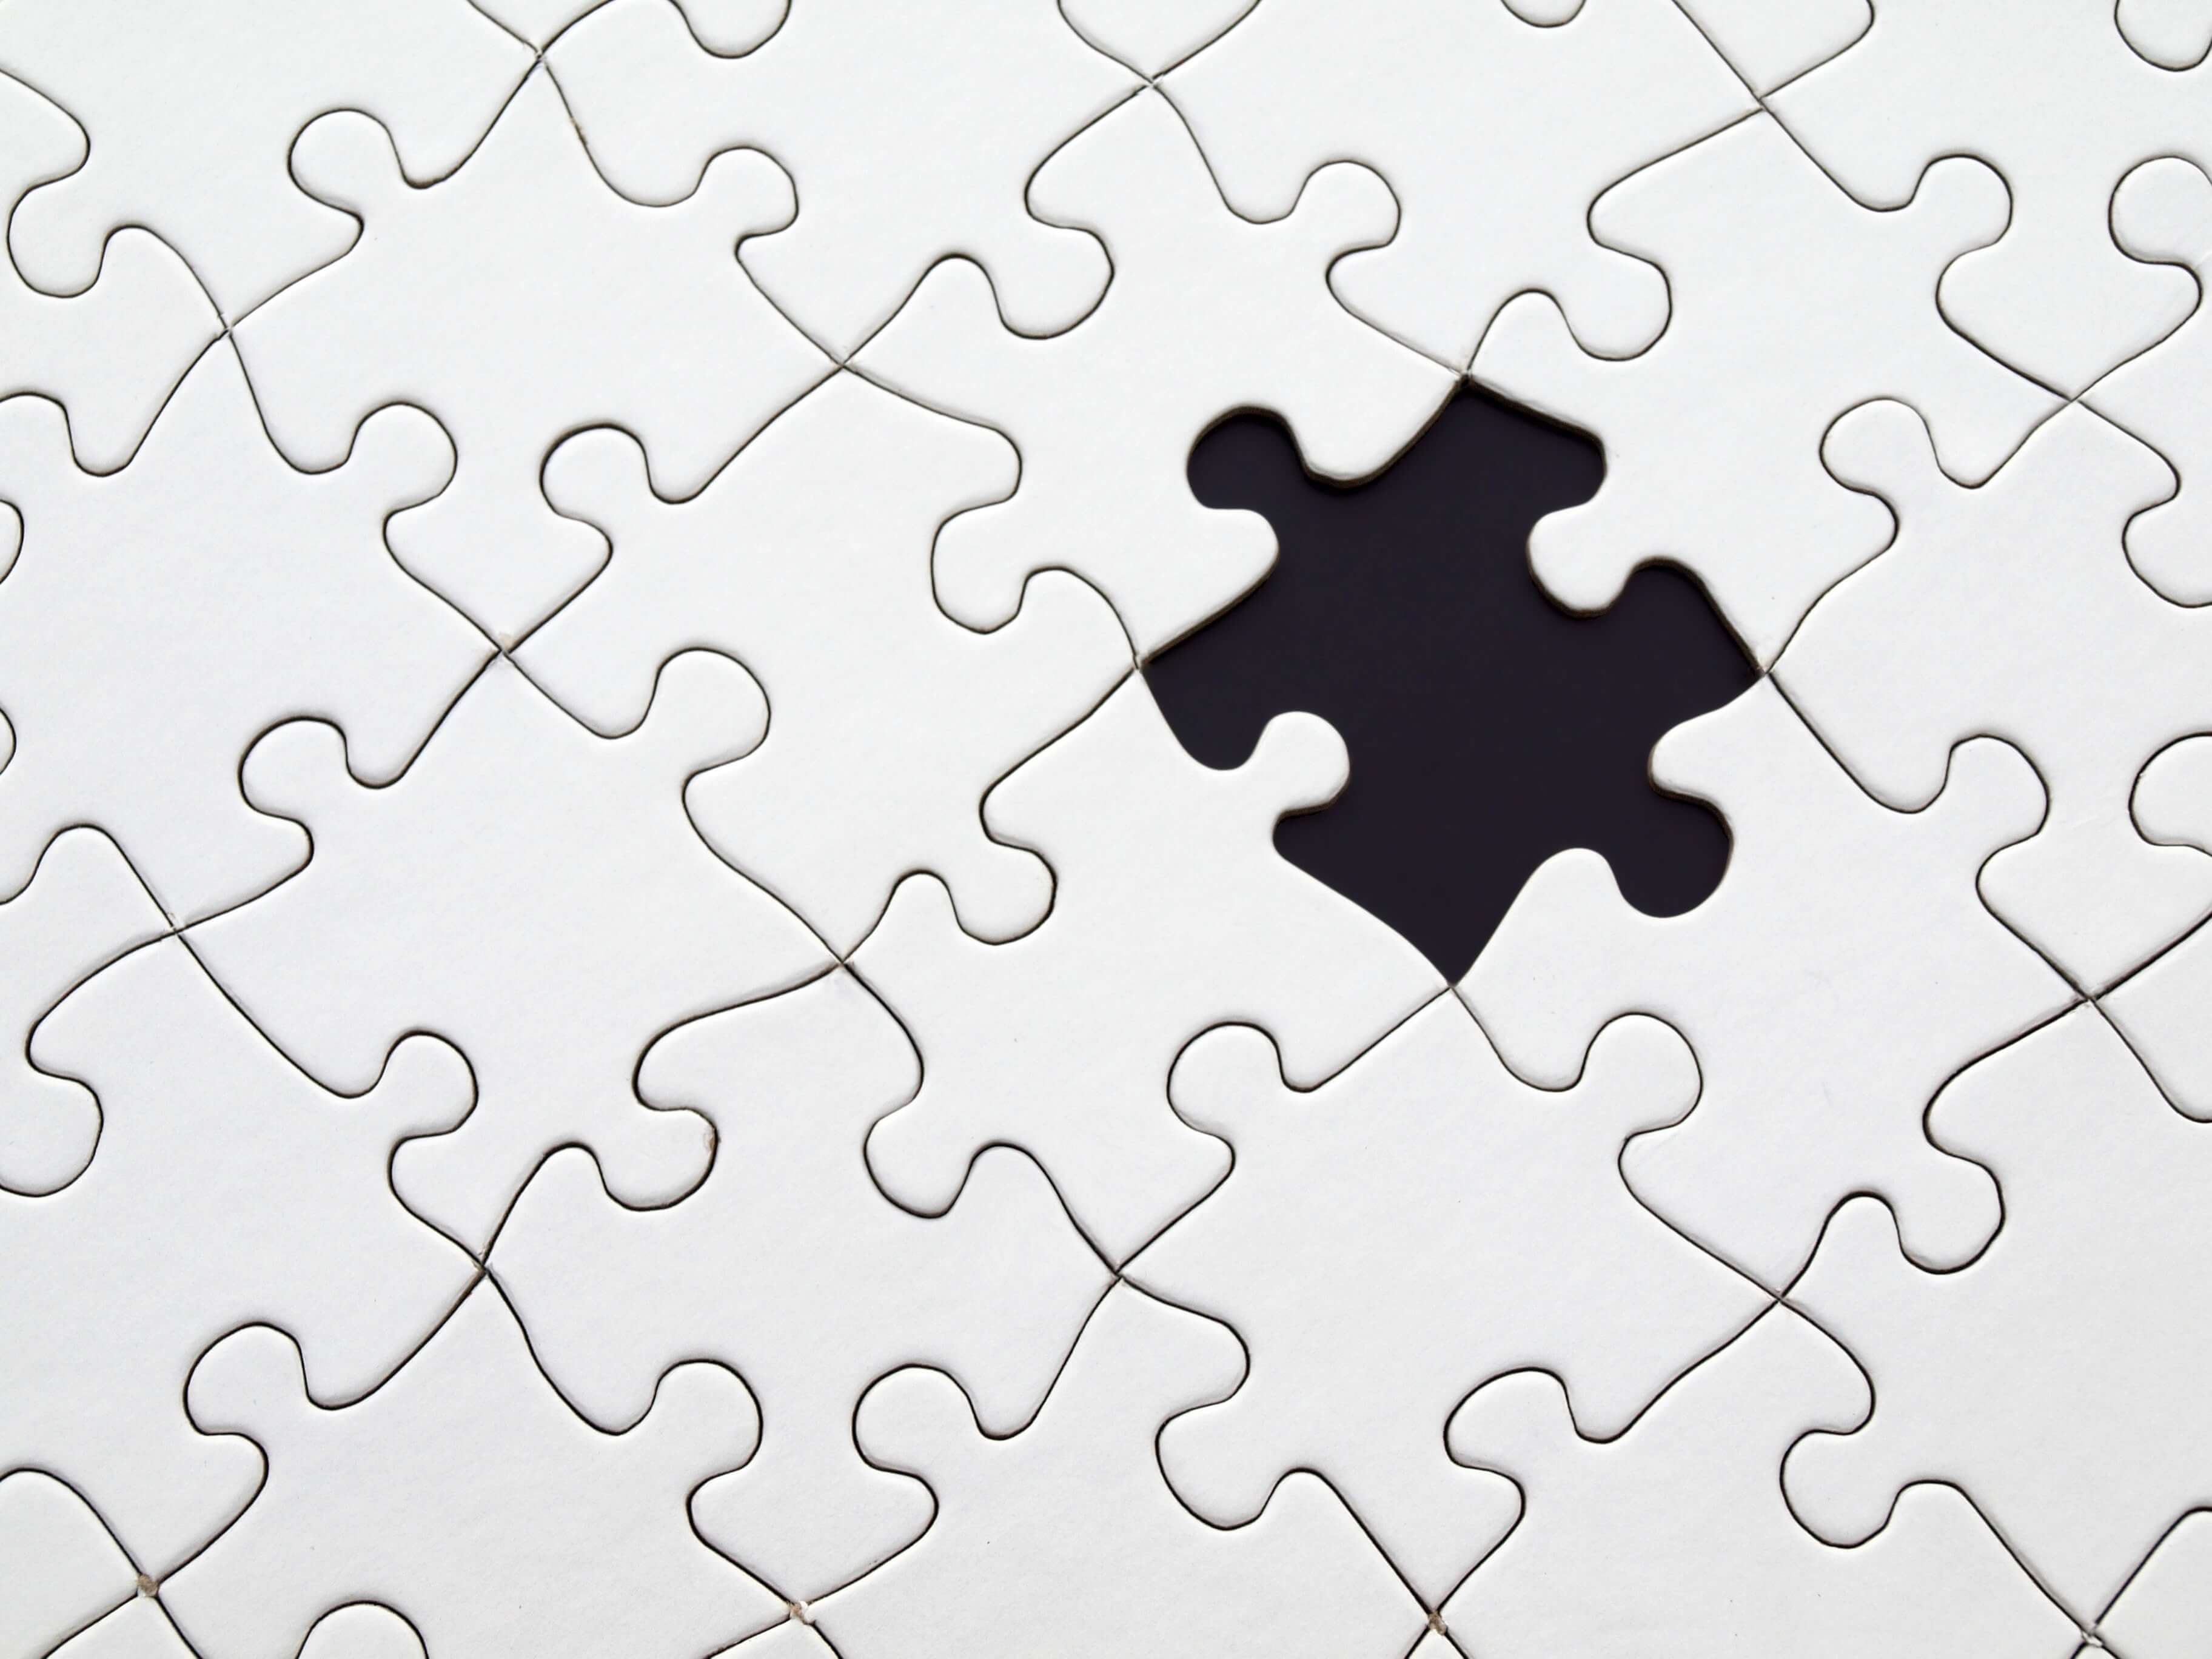 Strategic Logistics Puzzle